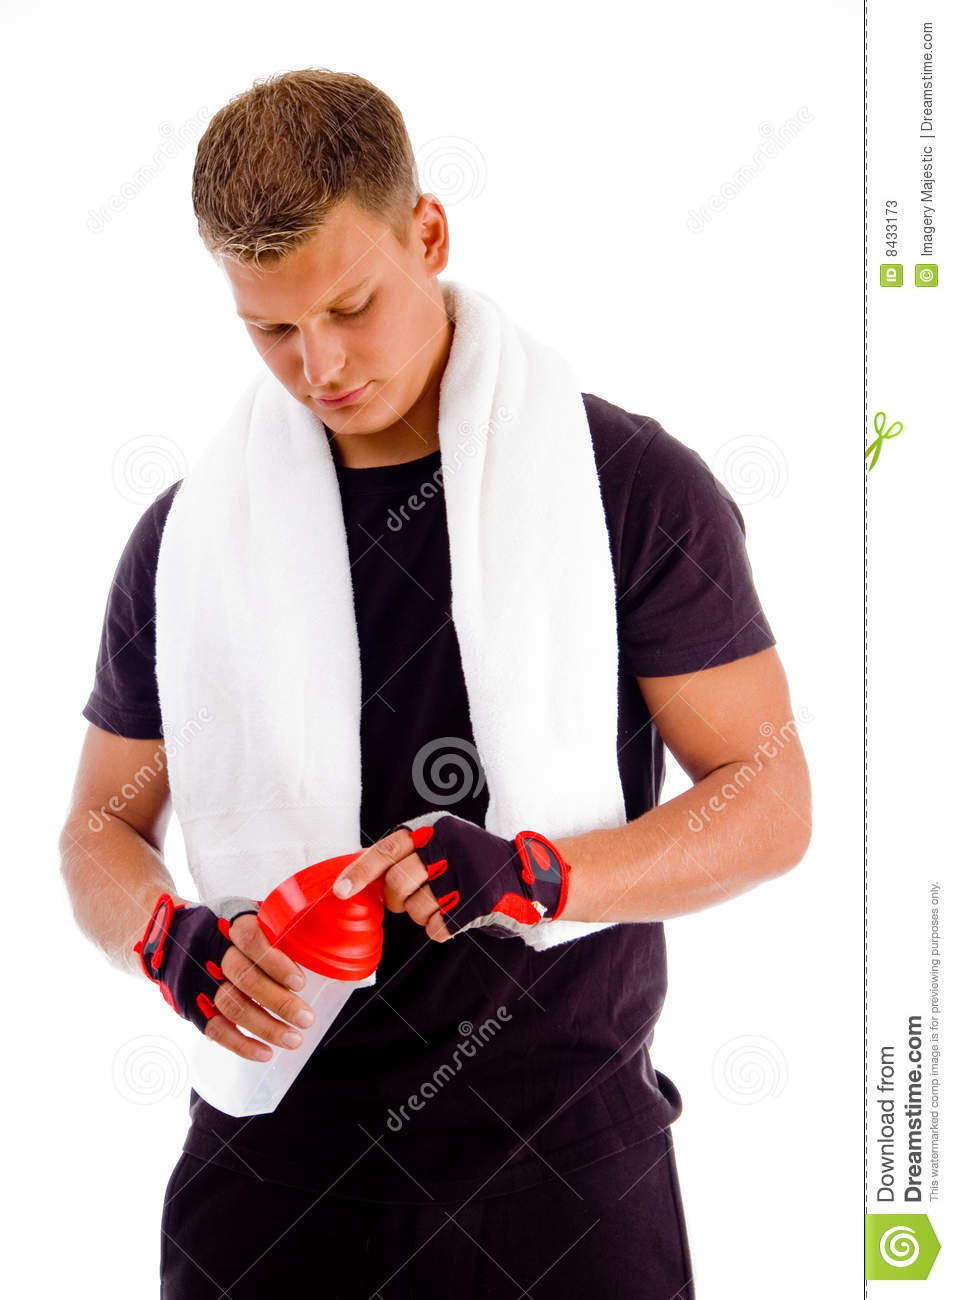 Muscular man opening the cap of water bottle